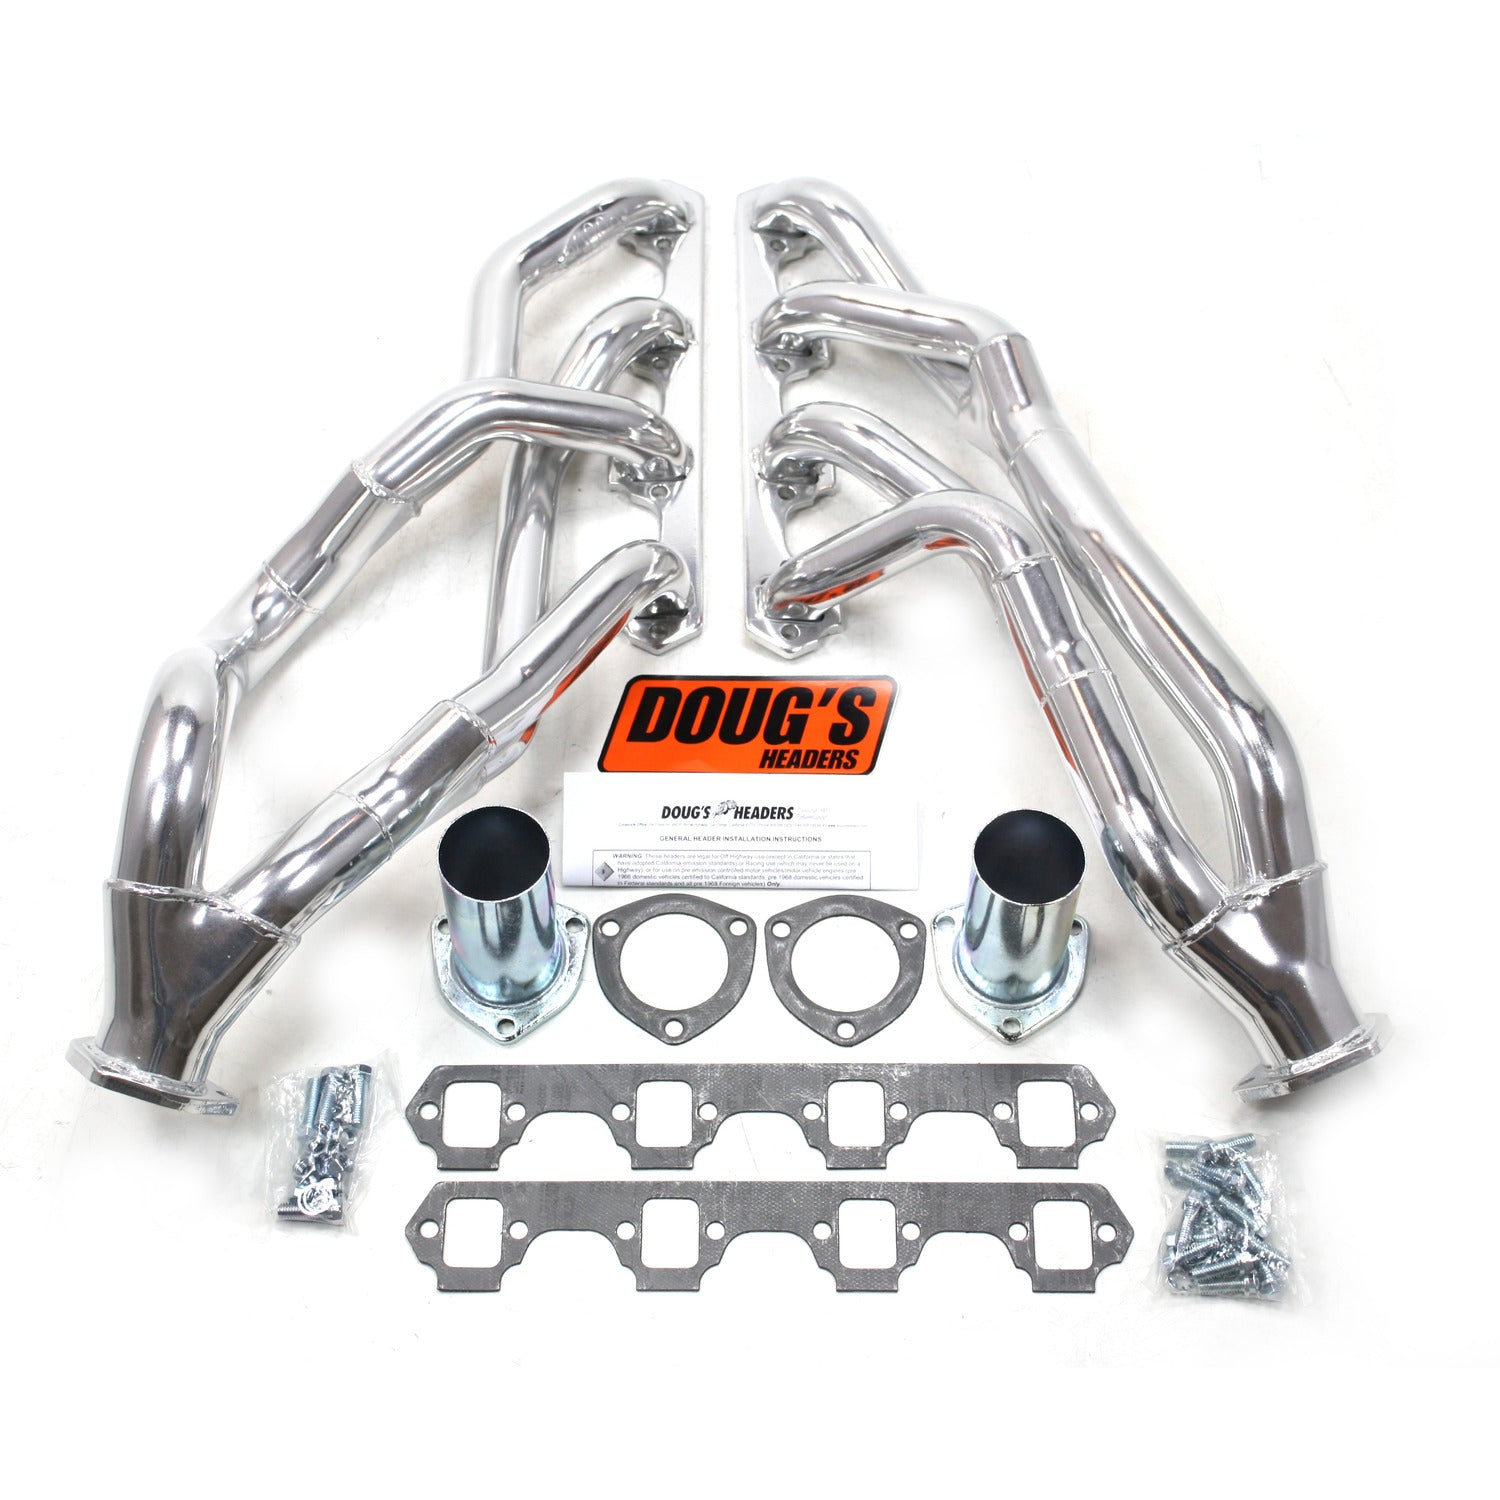 "Doug's Headers D690YS 1 5/8"" Tri-Y Header Ford Mustang Small Block Ford 64-70 Metallic Ceramic Coating"